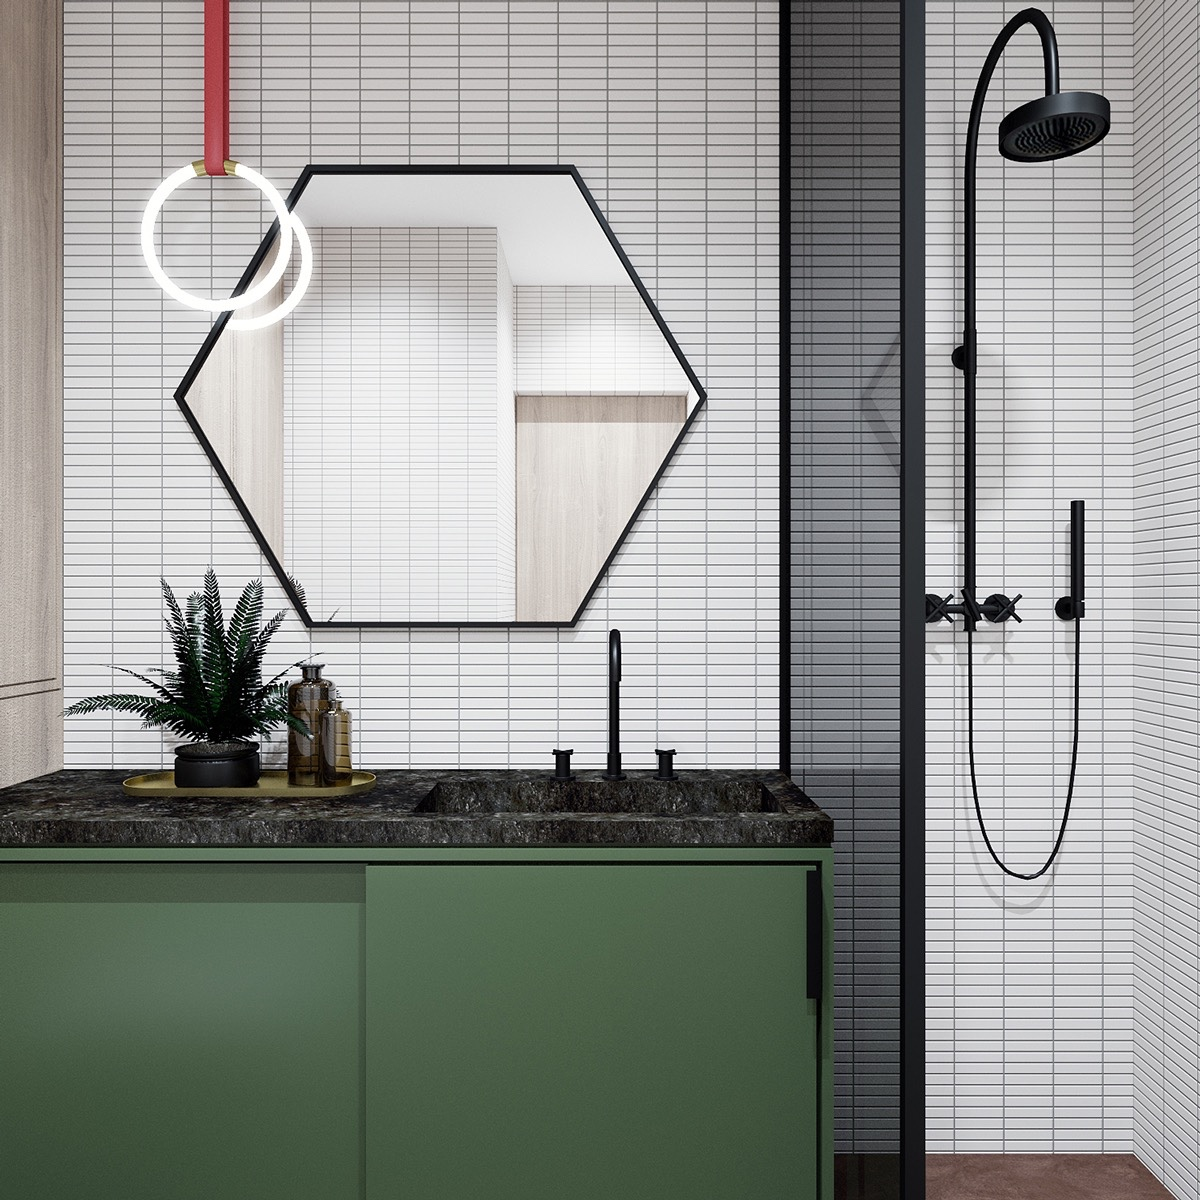 Geometric Bathroom Design Theme - 2 well rounded home designs under 600 square feet includes layout